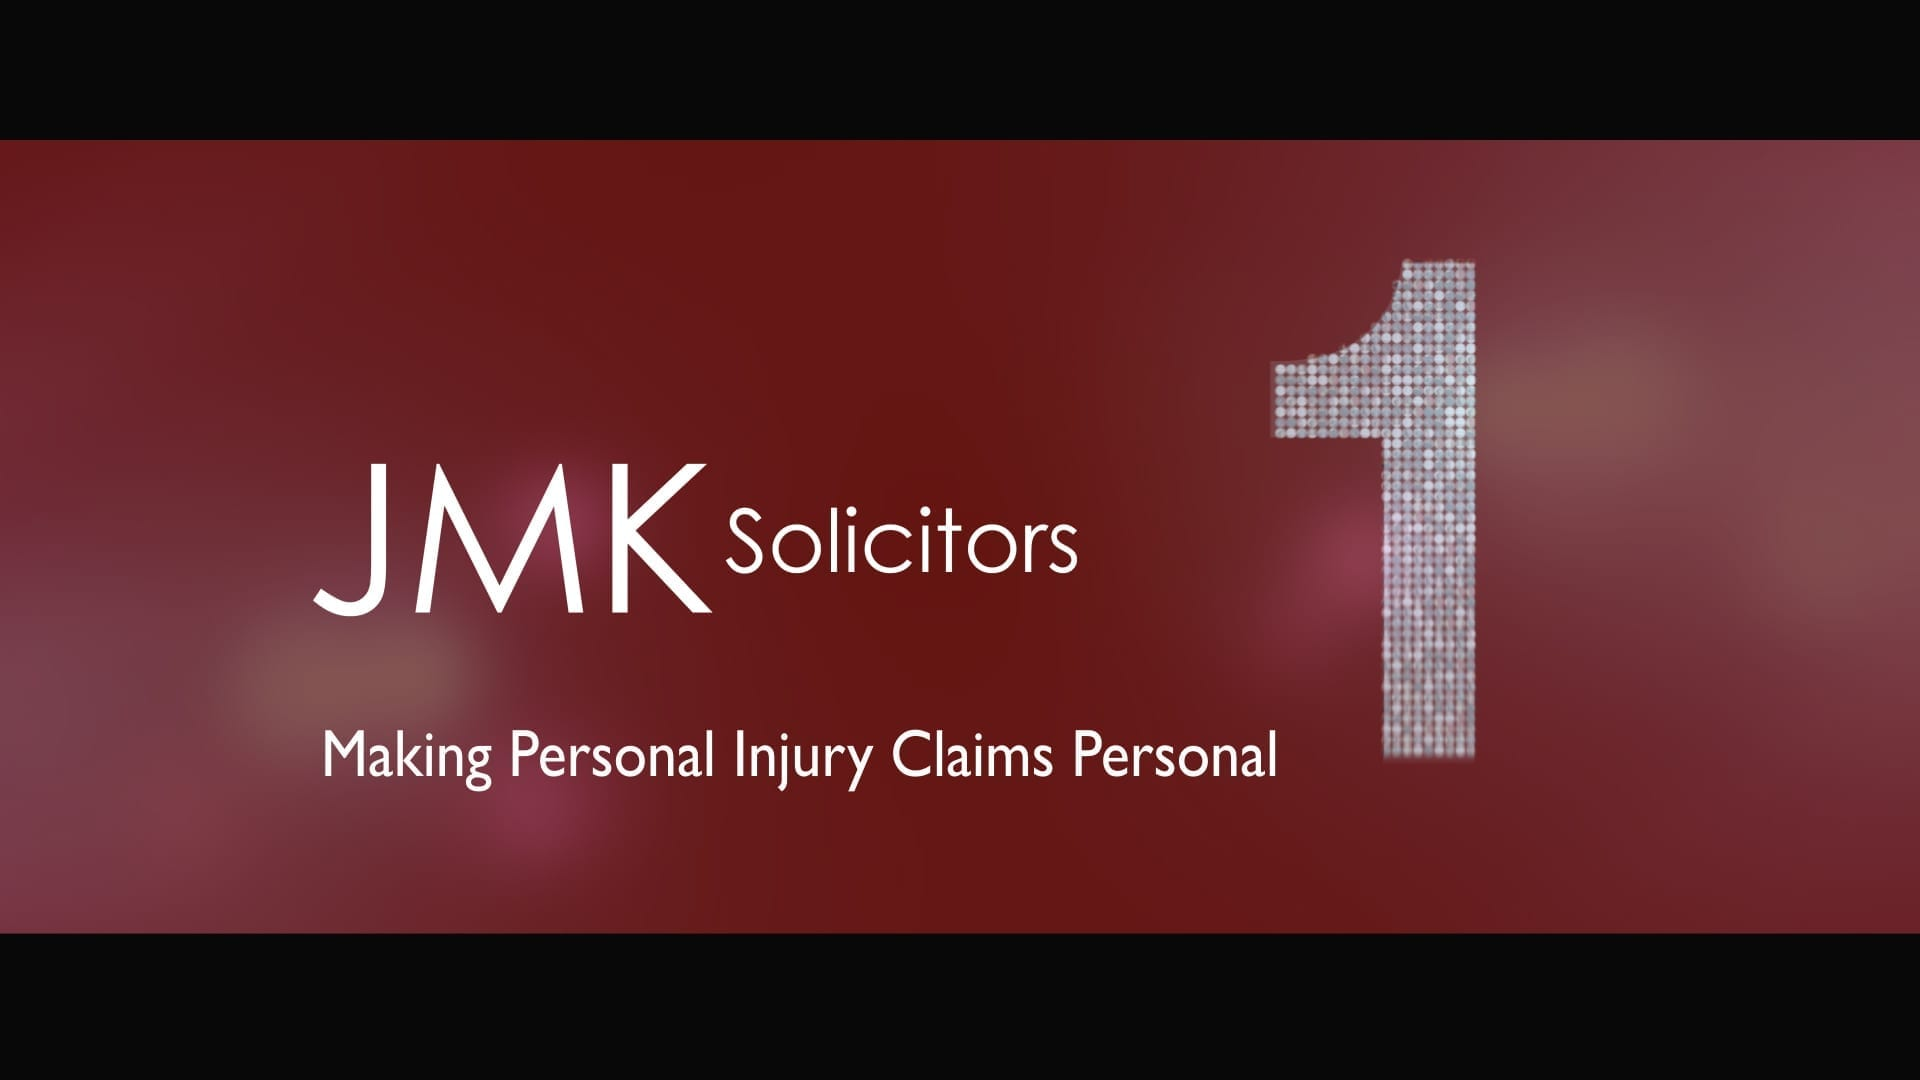 JMK Solicitors - Making Personal Injury Claims Personal